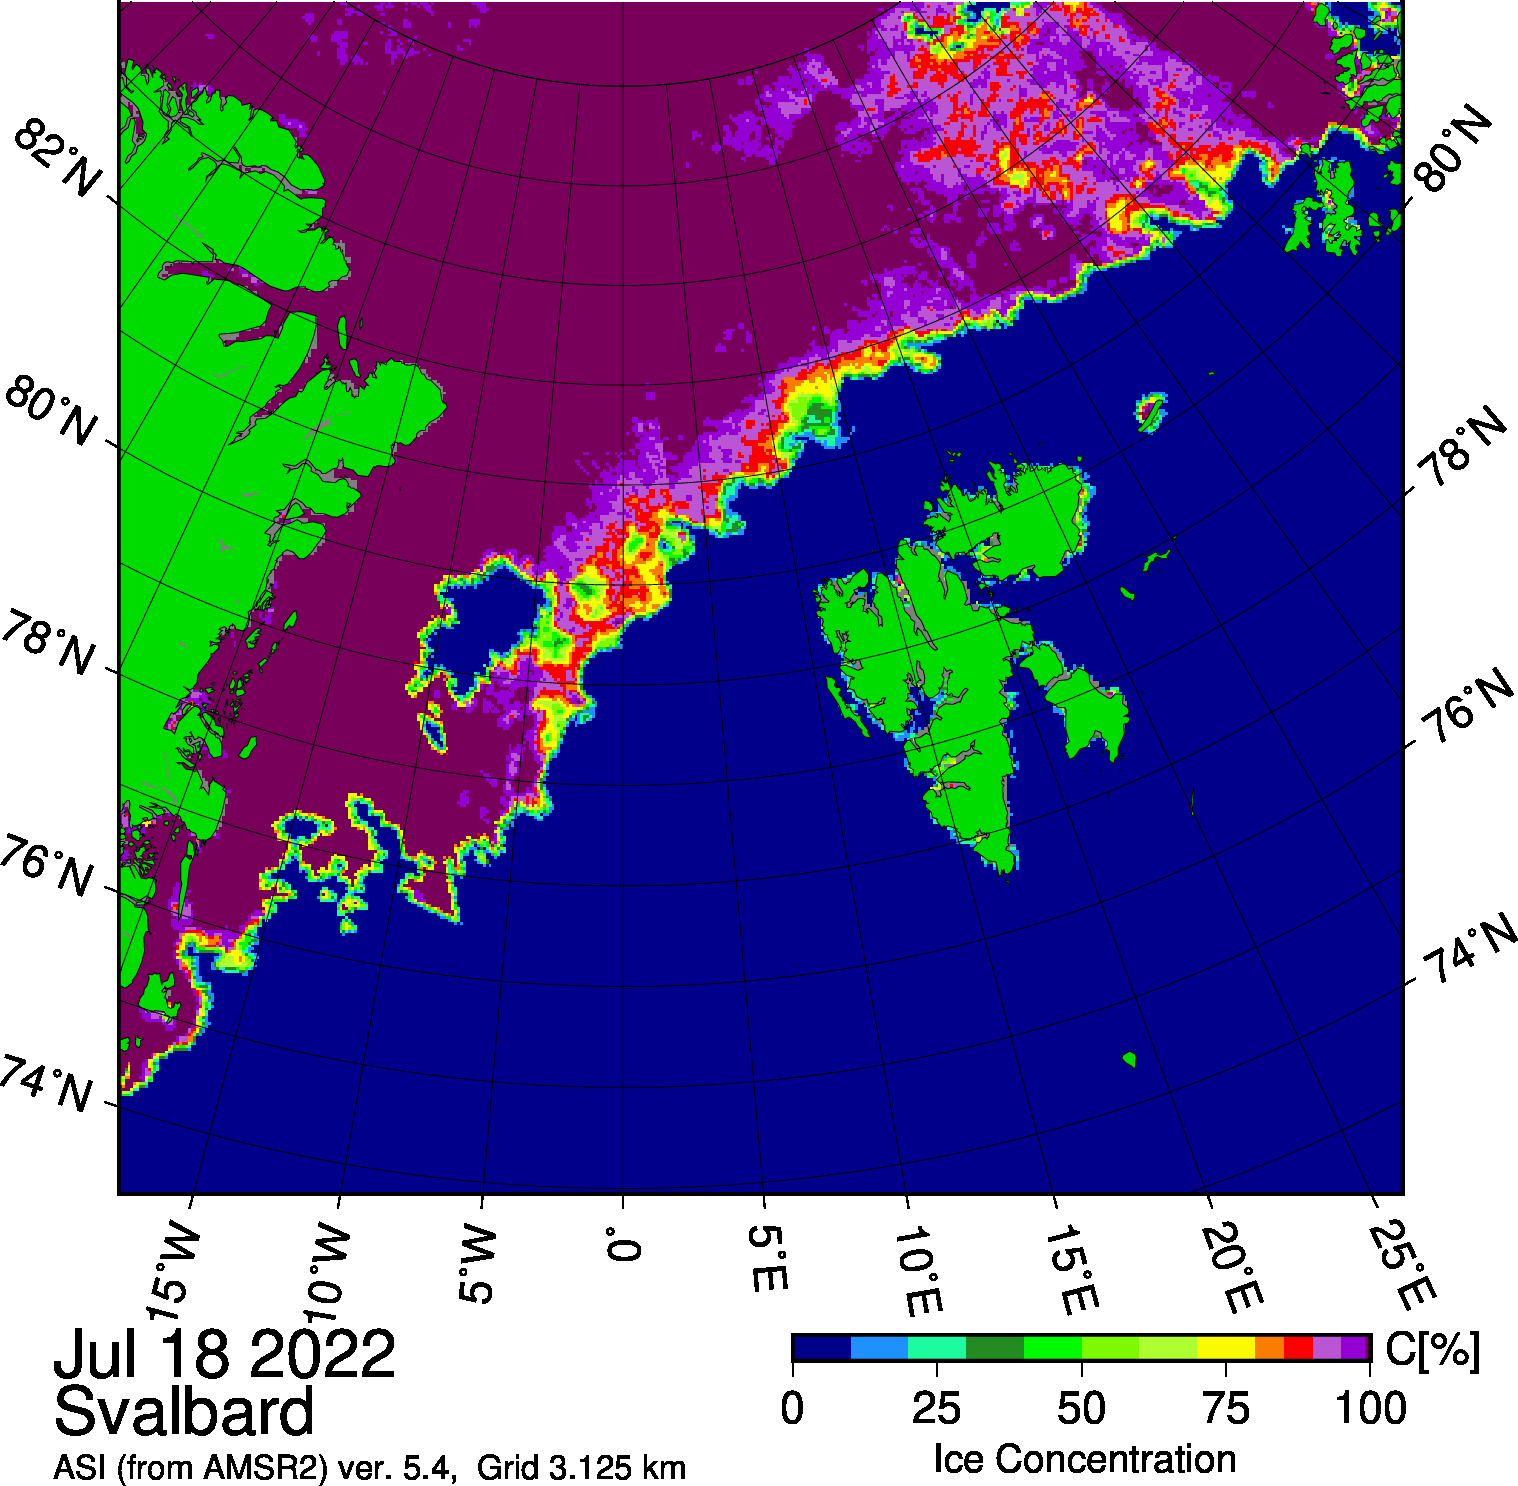 AMSR2 Svalbard sea ice concentration from the University of Bremen